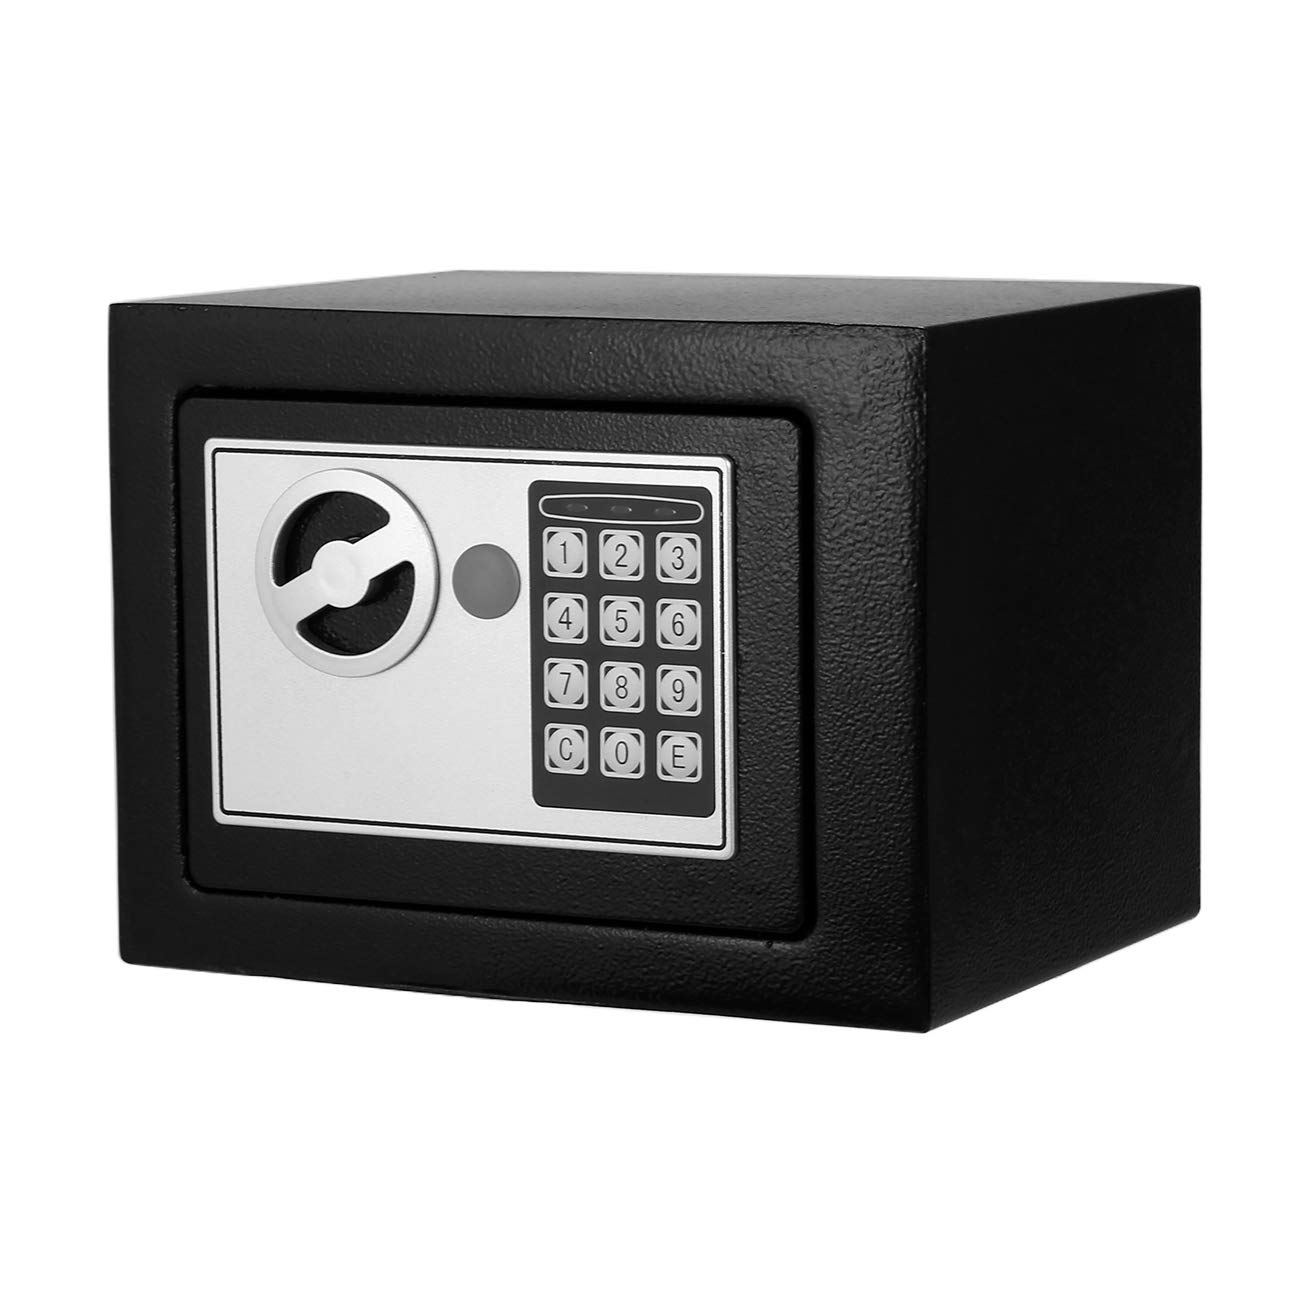 Digital Electronic Safe Security Box Fireproof Wall-Anchoring Safe Deposit Box for Money Jewelry Cash Batteries - US Stock (Black)